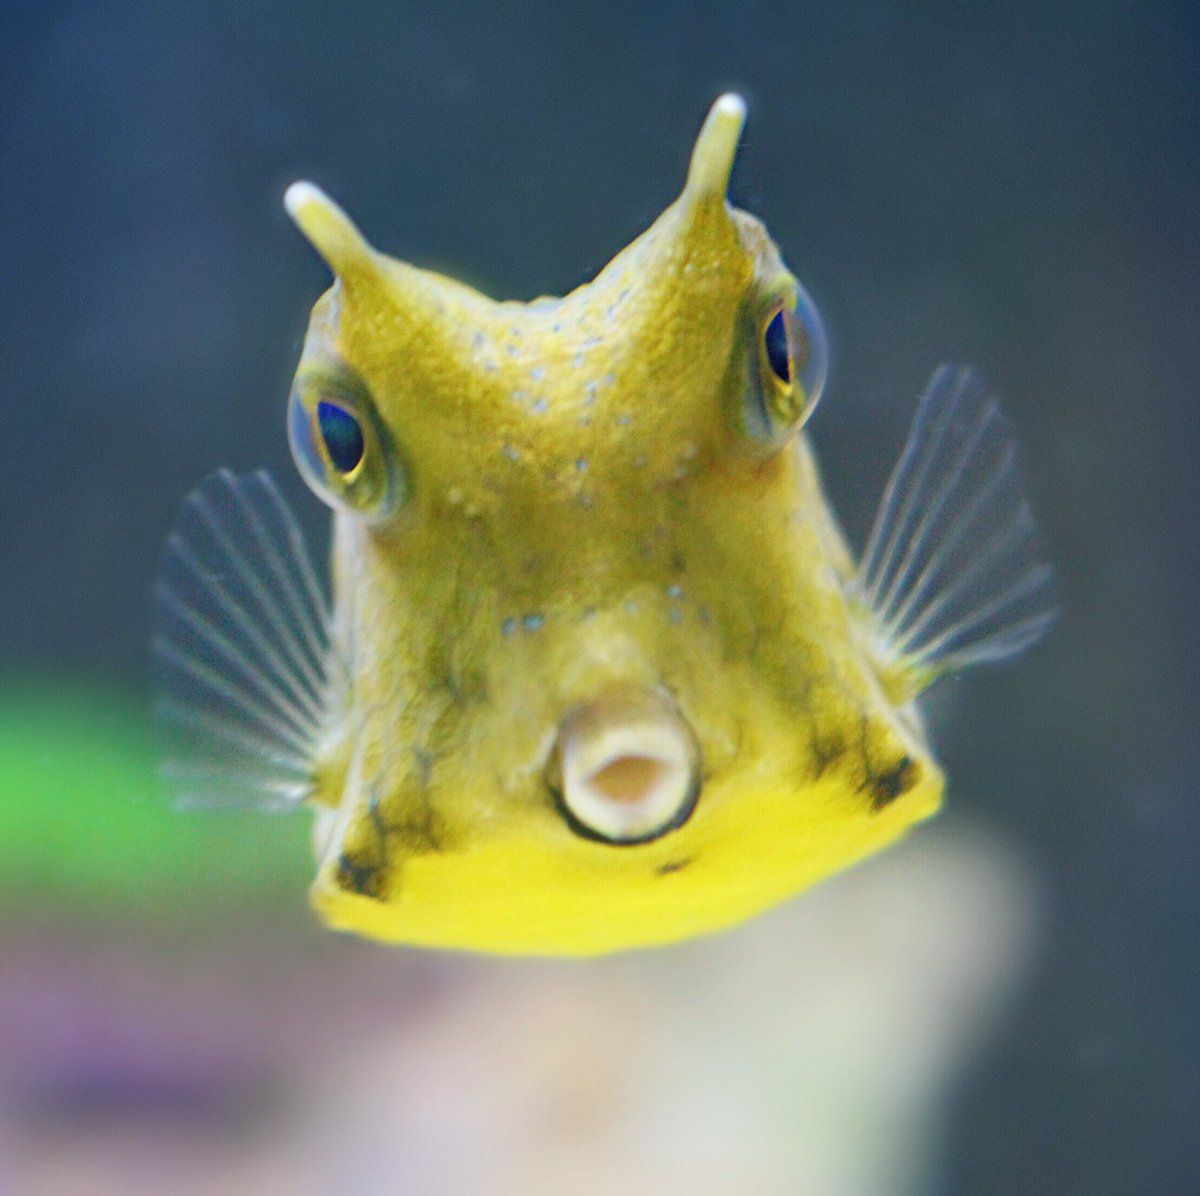 This Is Cheese The Cowfish Http Ift Tt 2zkpoz9 Cow Fish Cute Small Animals Cute Fish